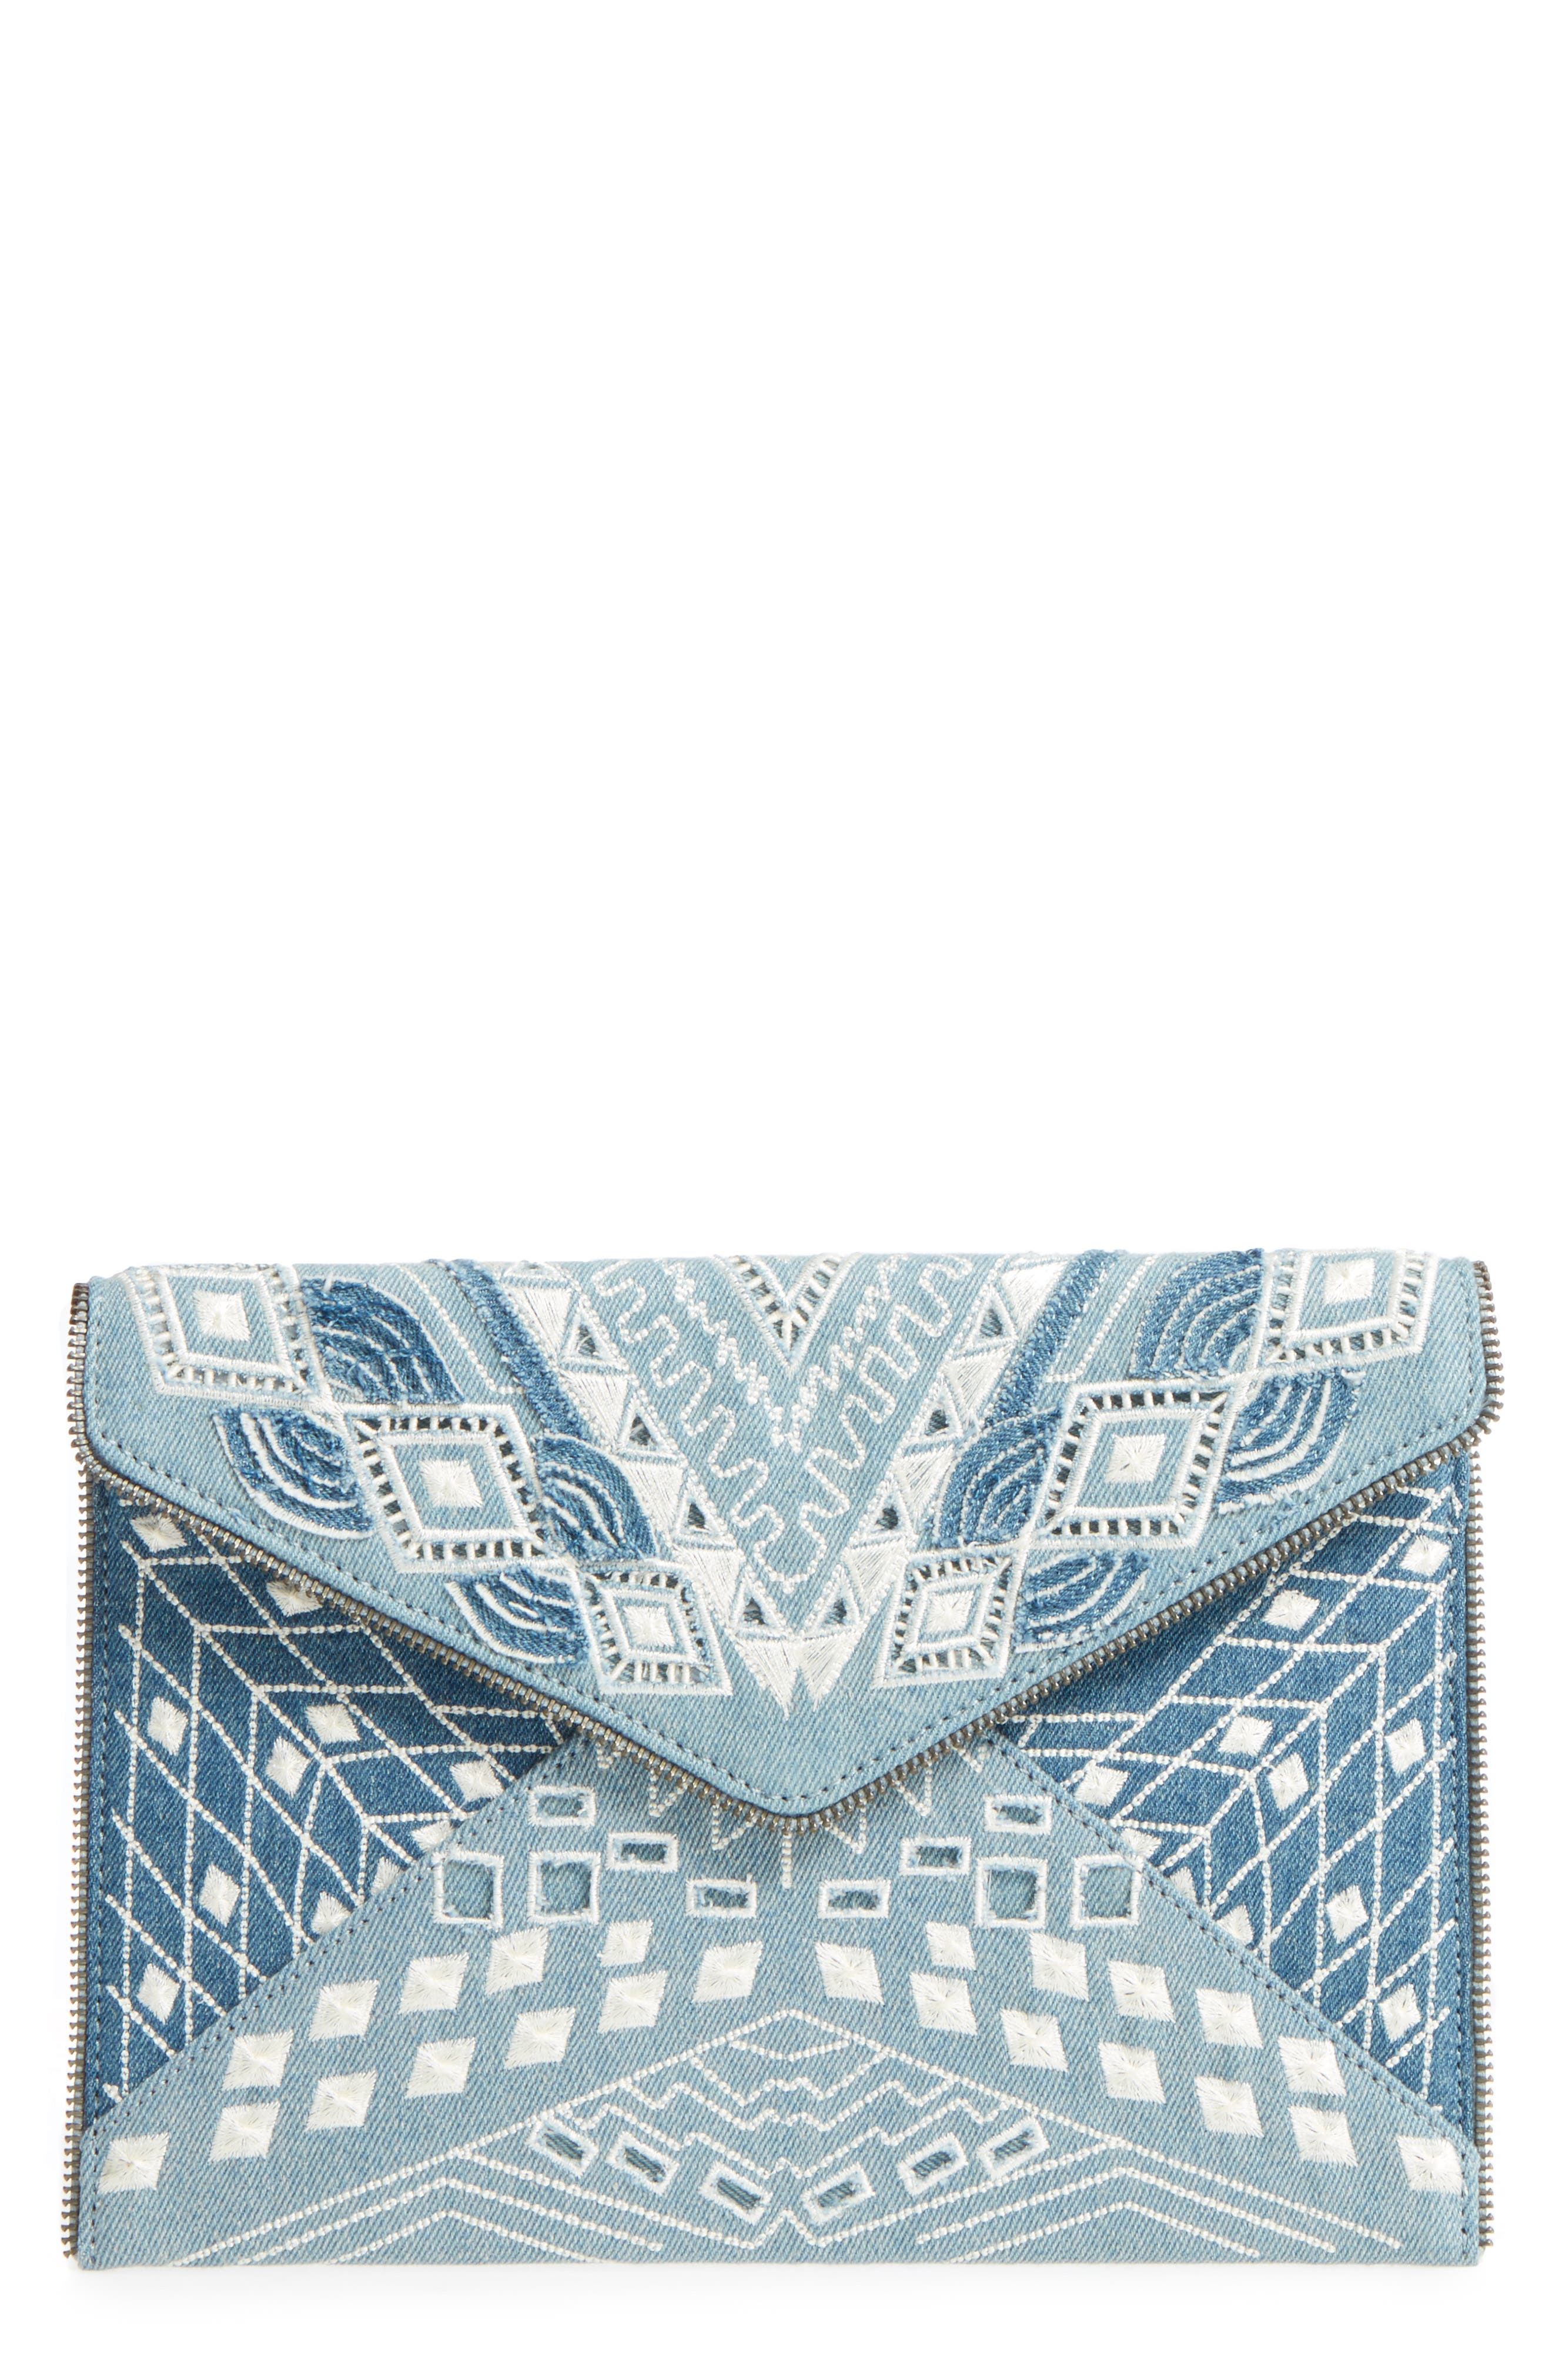 Alternate Image 1 Selected - Rebecca Minkoff Leo Embroidered Denim Clutch